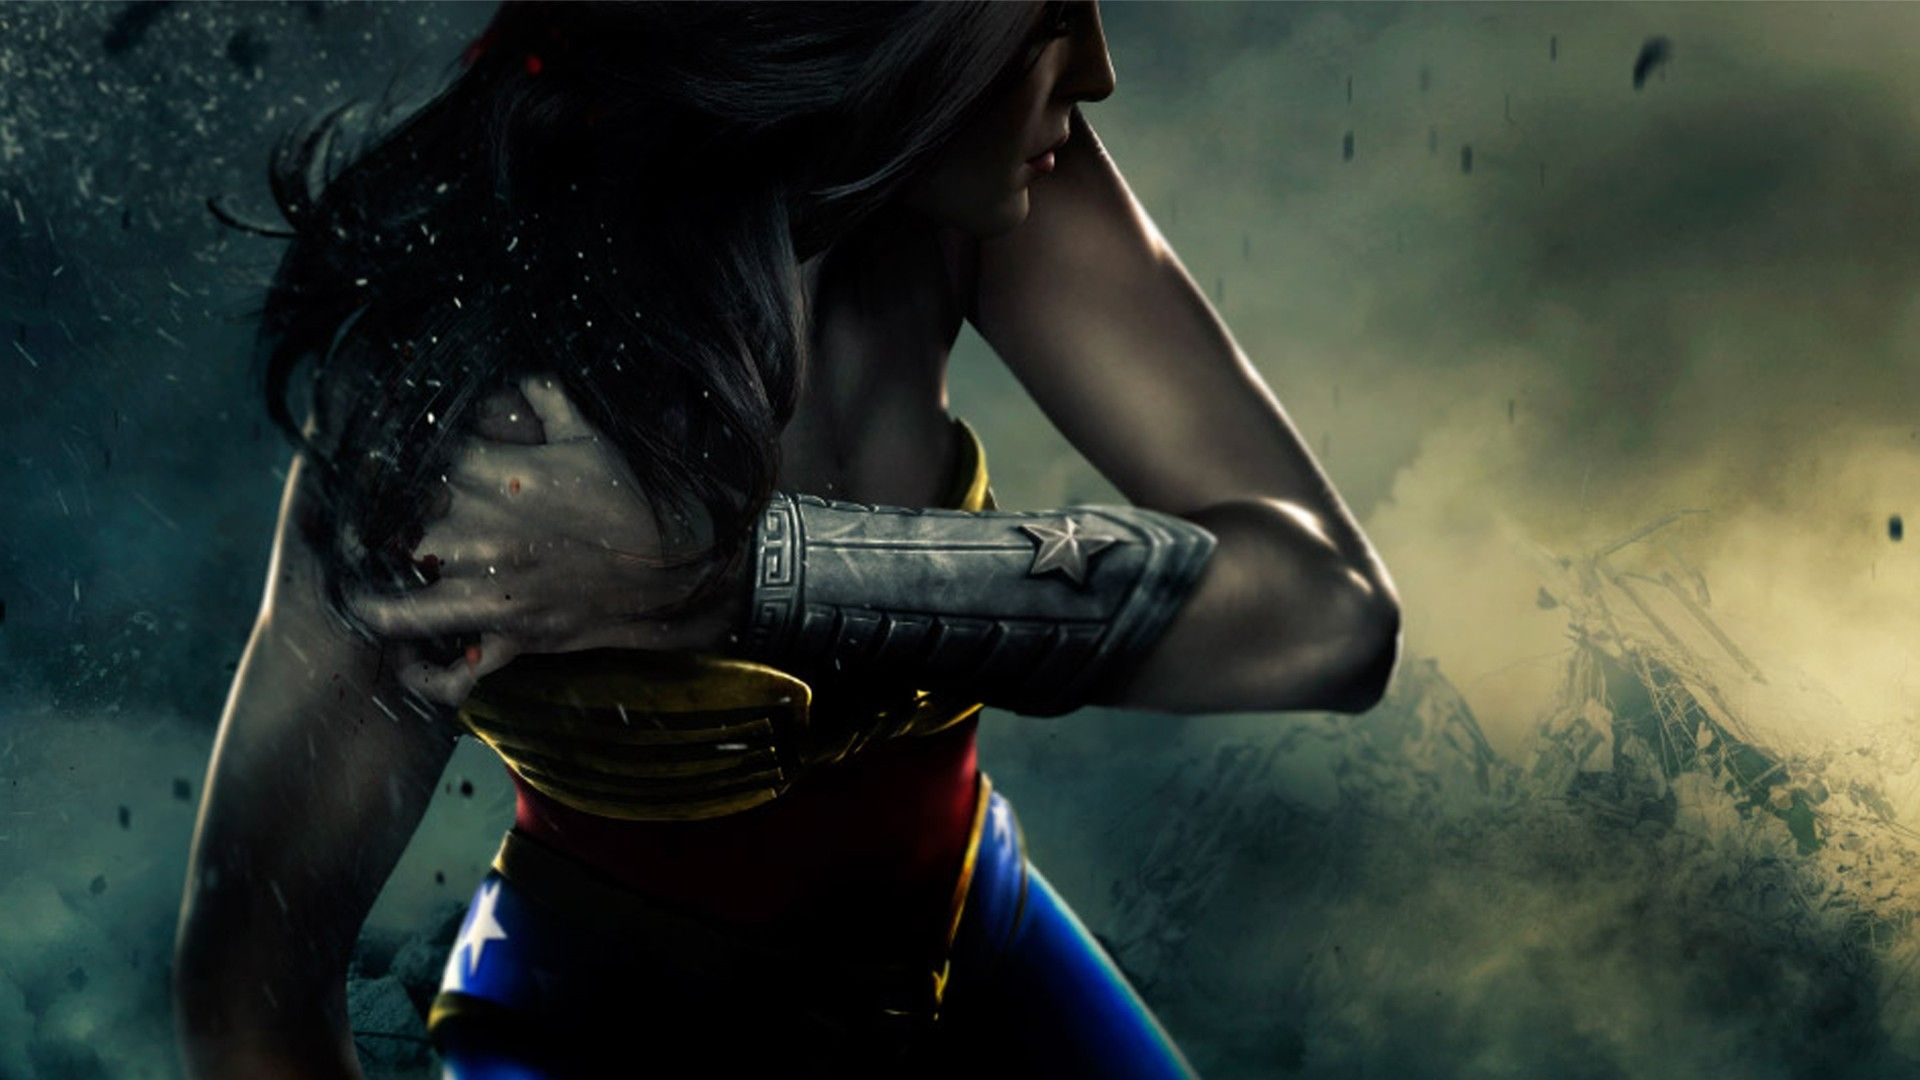 Wonder Woman Injustice Gods Among Us Wonder Woman Wonder Women